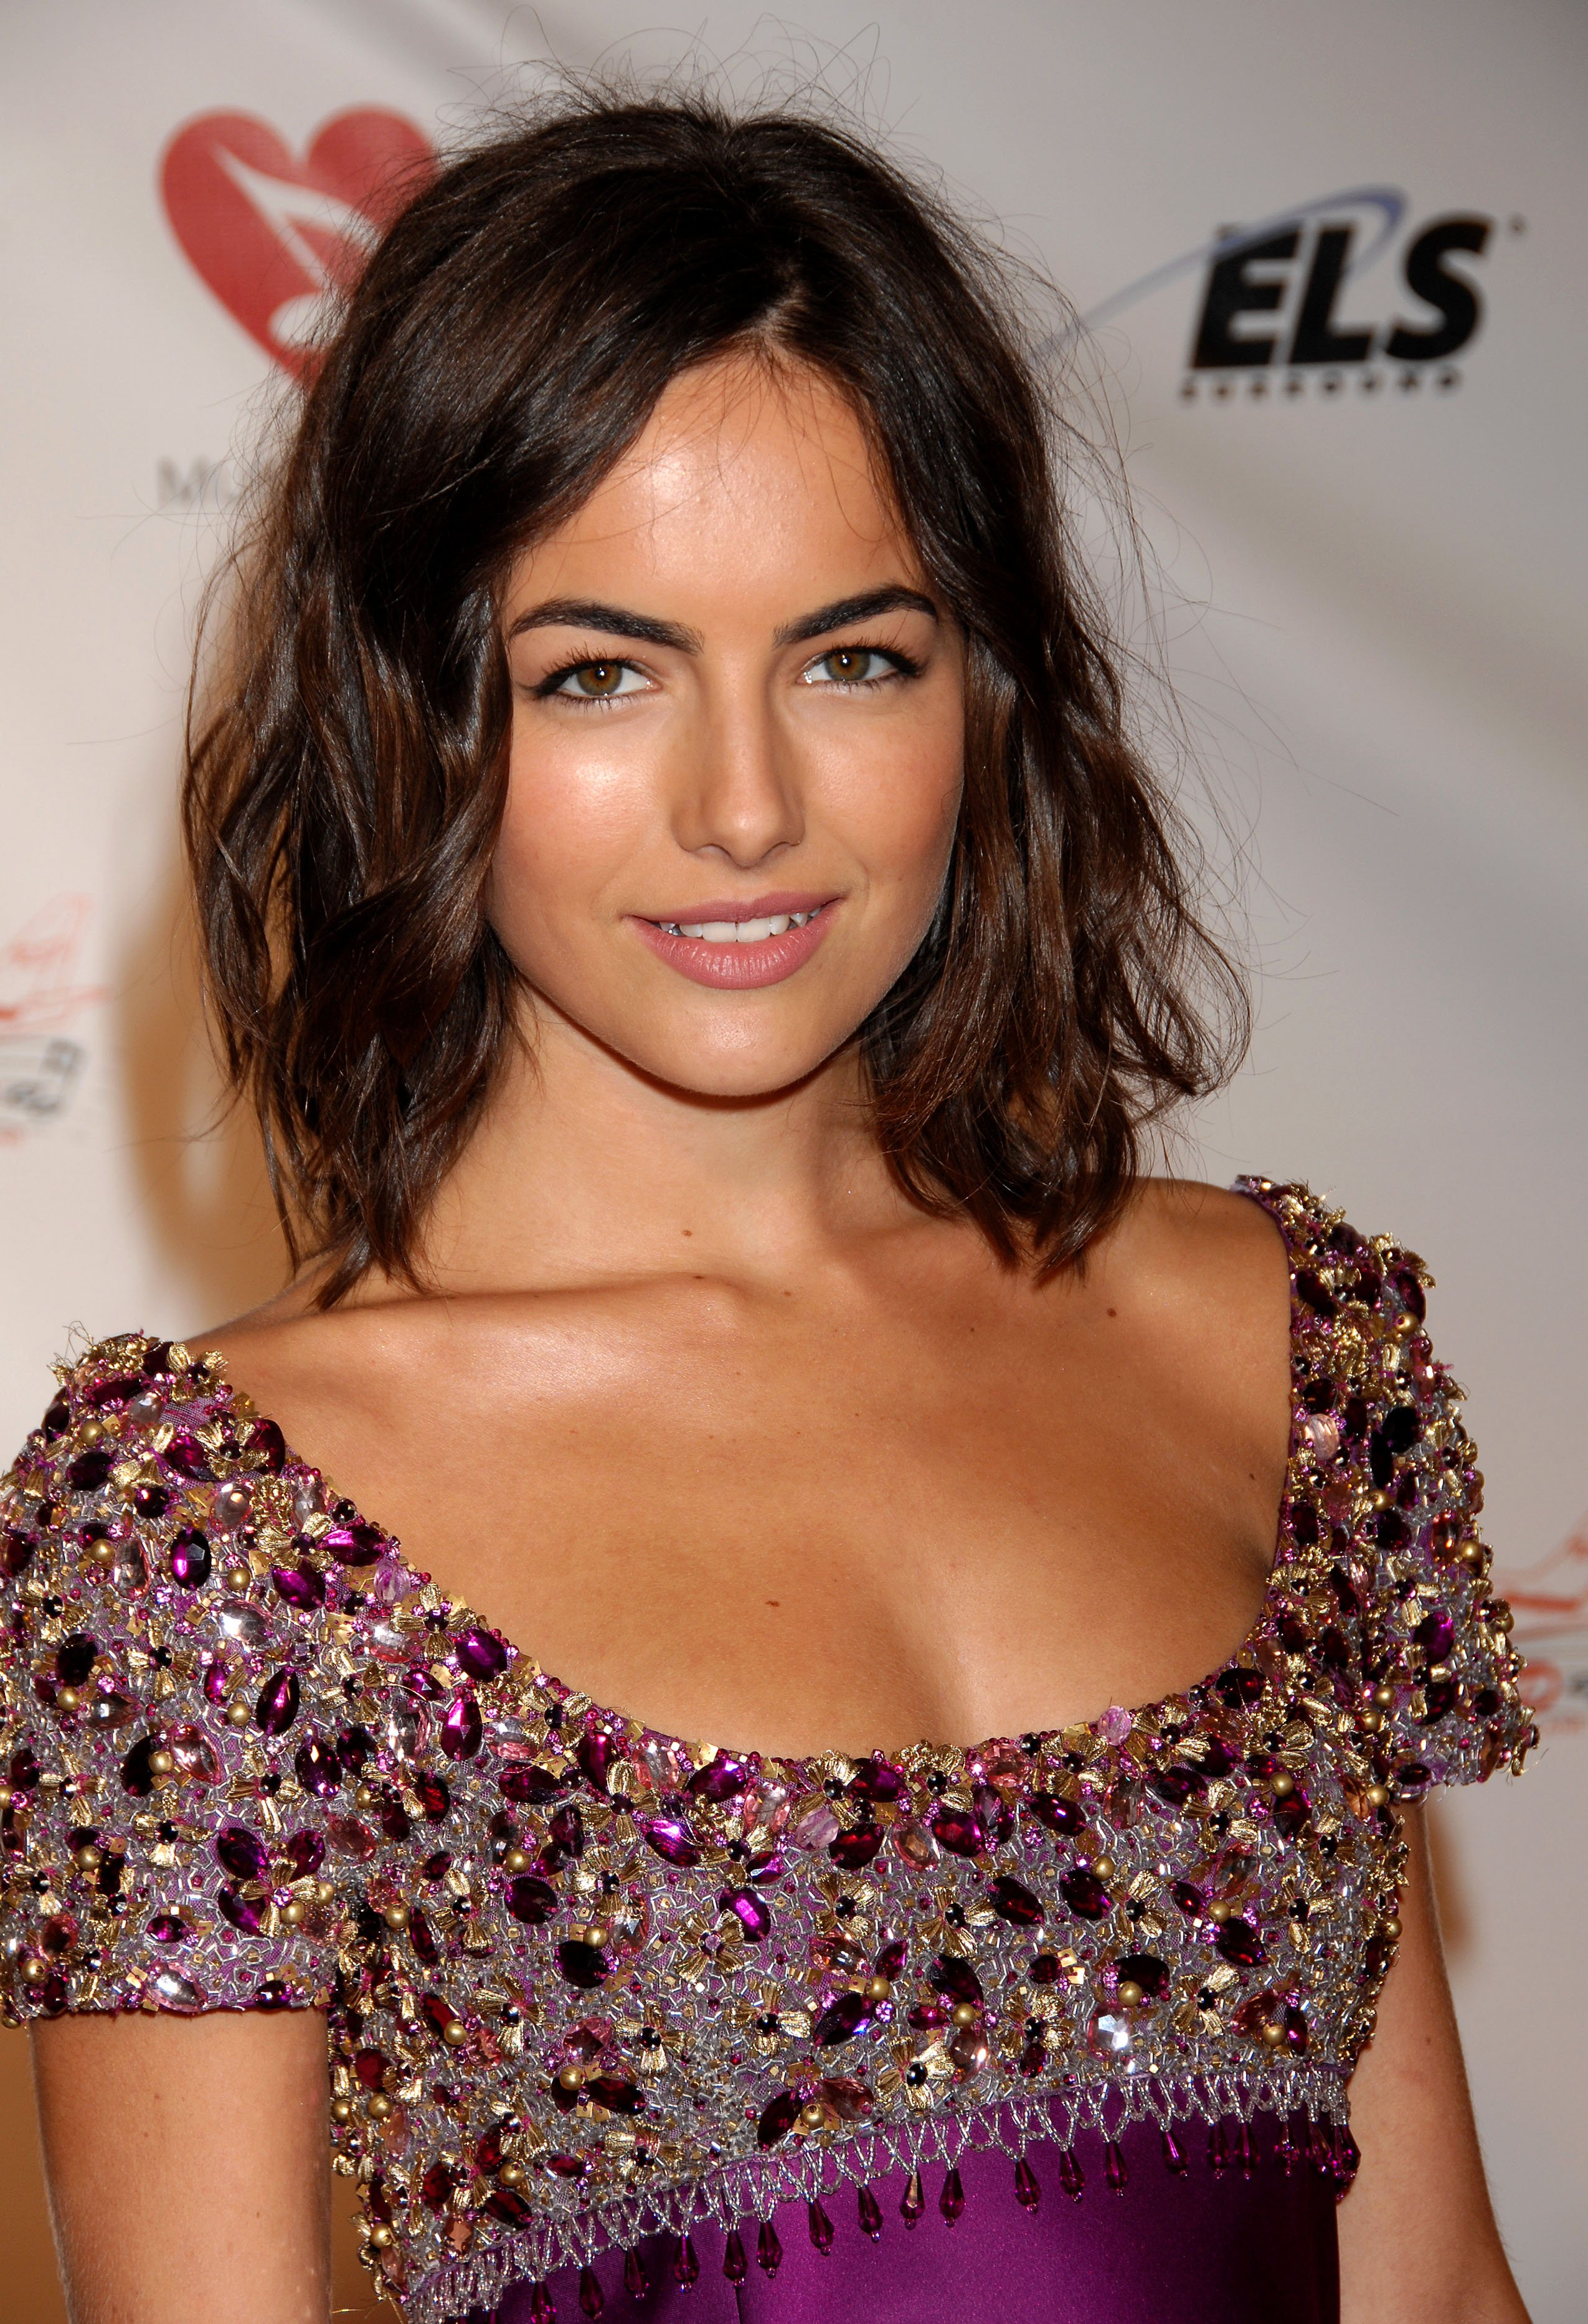 07623_Celebutopia-Camilla_Belle_arrives_at_the_2009_MusiCares_Person_Of_The_Year_Gala-16_122_1025lo.JPG